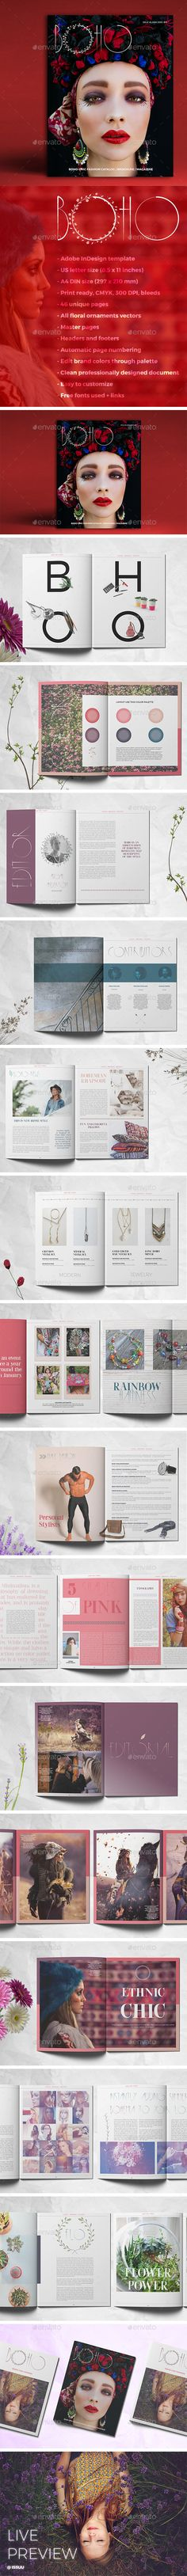 Boho Magazine by LeoneDanieli BOHO is beautiful vintage and cool fashion brochure / magazine layout for Adobe InDesign. Print ready or export as a PDF BOHO is